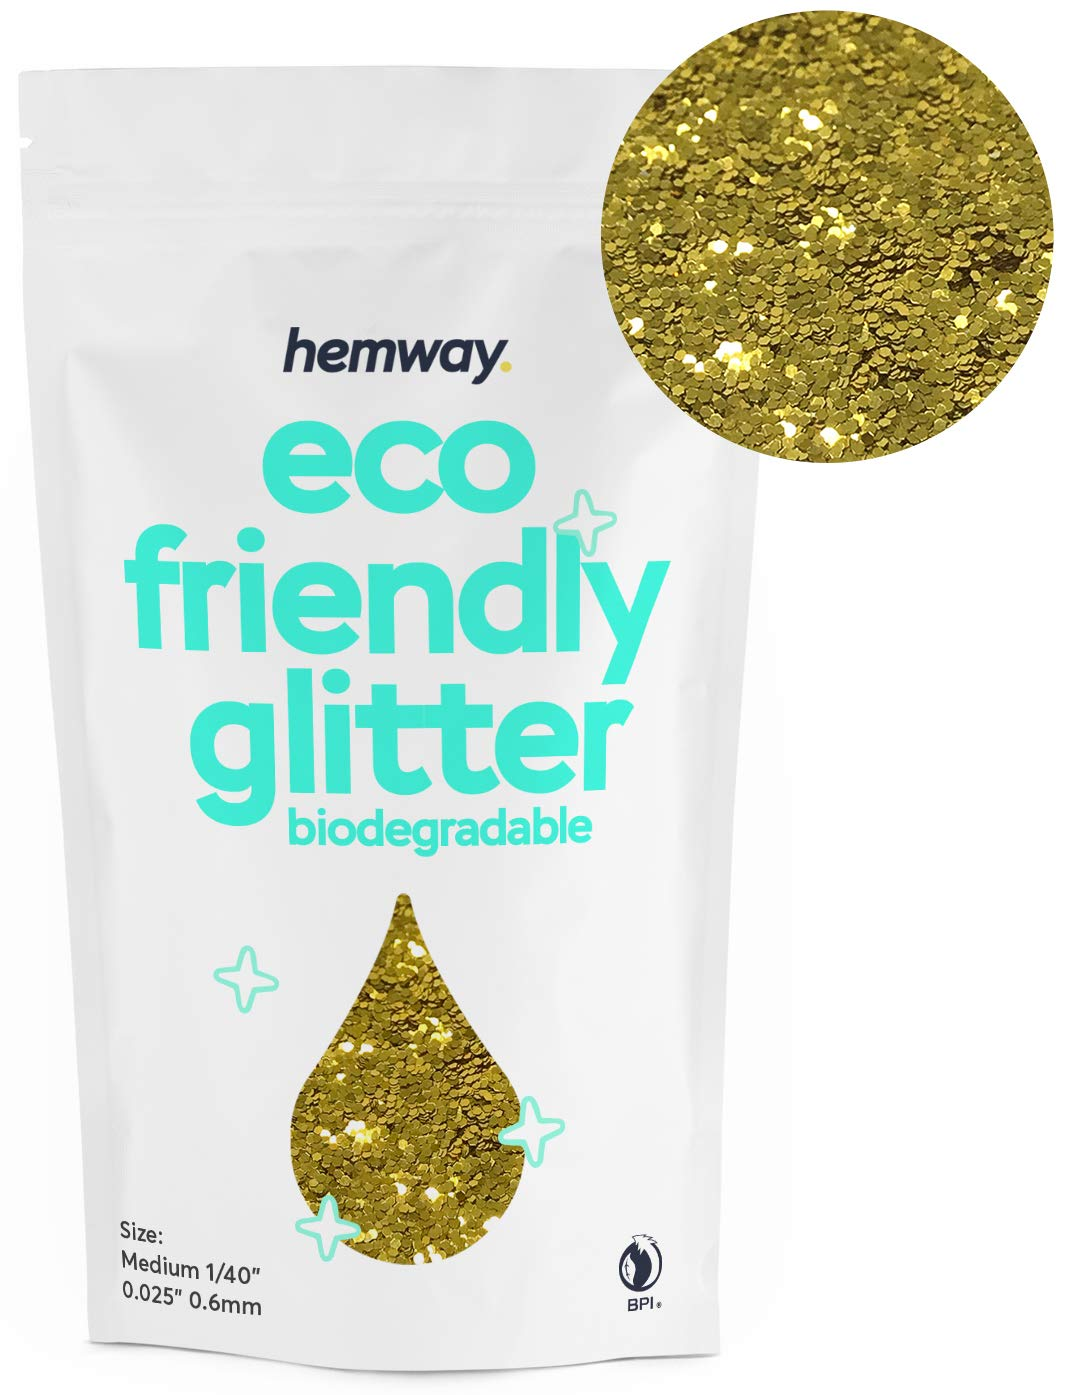 """Hemway Eco Friendly Biodegradable Glitter 100g / 3.5oz Bio Cosmetic Safe Sparkle Vegan for Face, Eyeshadow, Body, Hair, Nail and Festival Makeup, Craft - 1/40"""" 0.025"""" 0.6mm - Gold"""